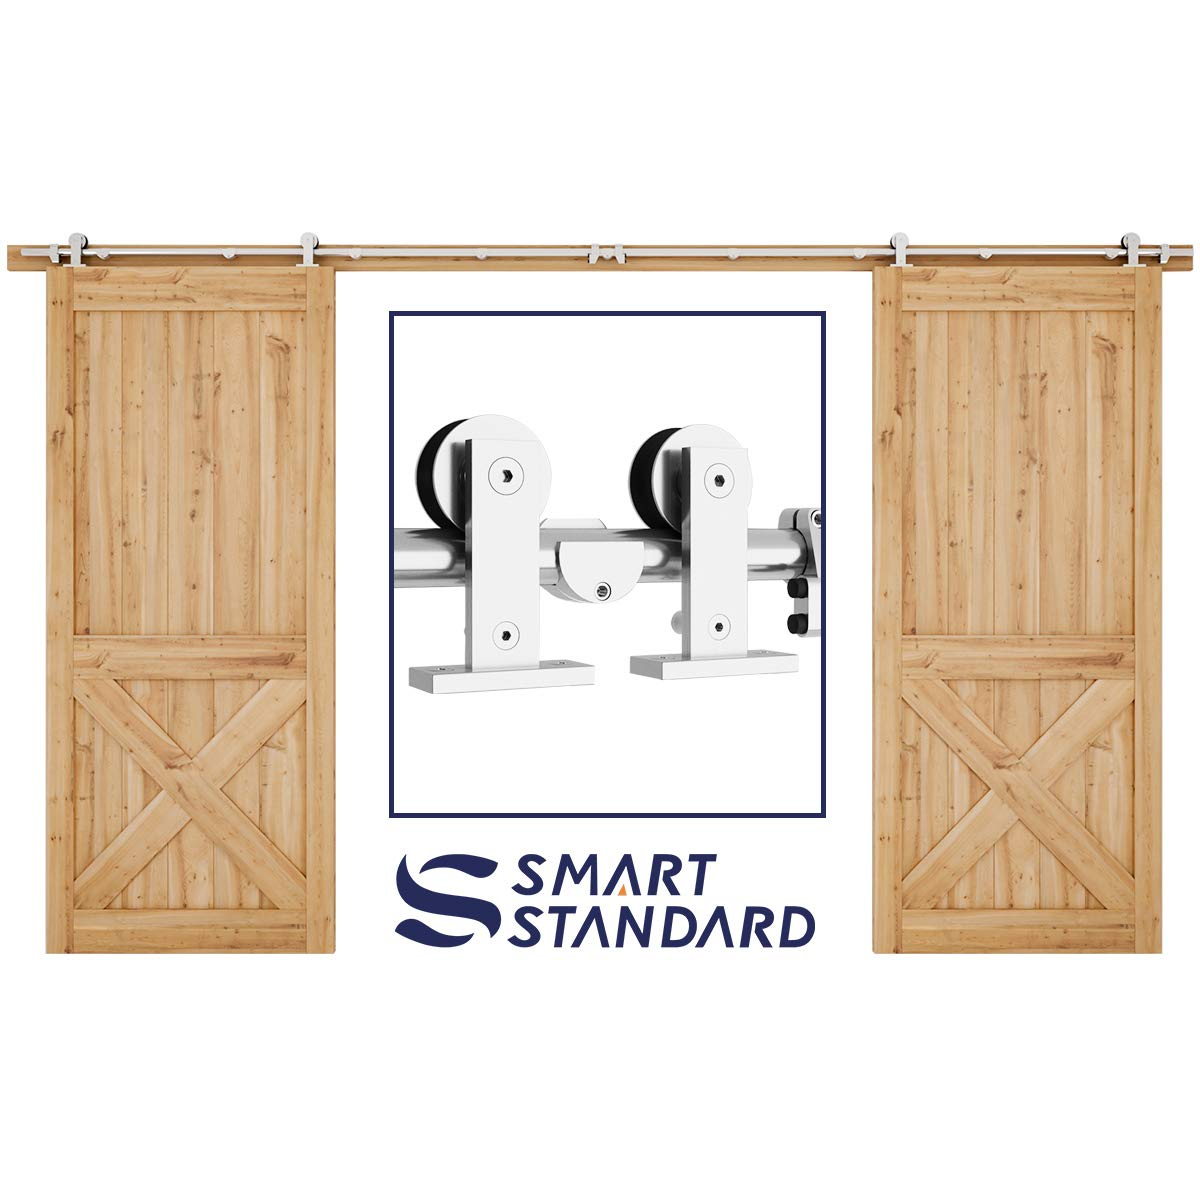 SMARTSTANDARD 12ft Stainless Steel Double Door Sliding Barn Door Hardware Kit -Smoothly and Quietly -Easy to Install –Includes Installation Instruction Fit 36'' Wide Door Panel (T Shape Hanger)